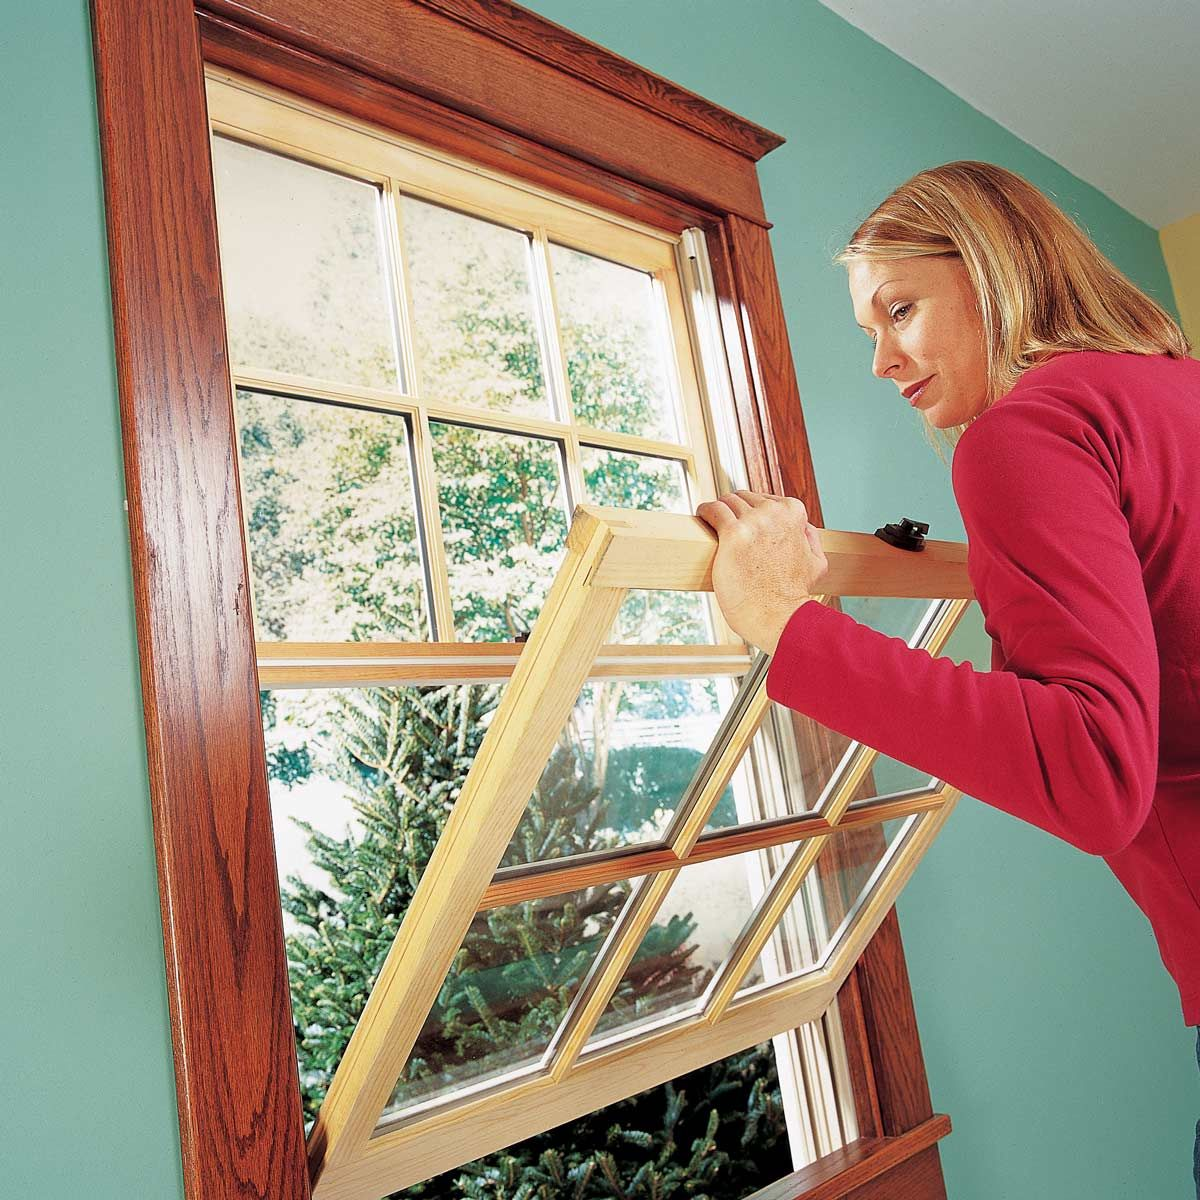 How To Install A Window In 2020 Home Repairs Vinyl Replacement Windows Window Installation